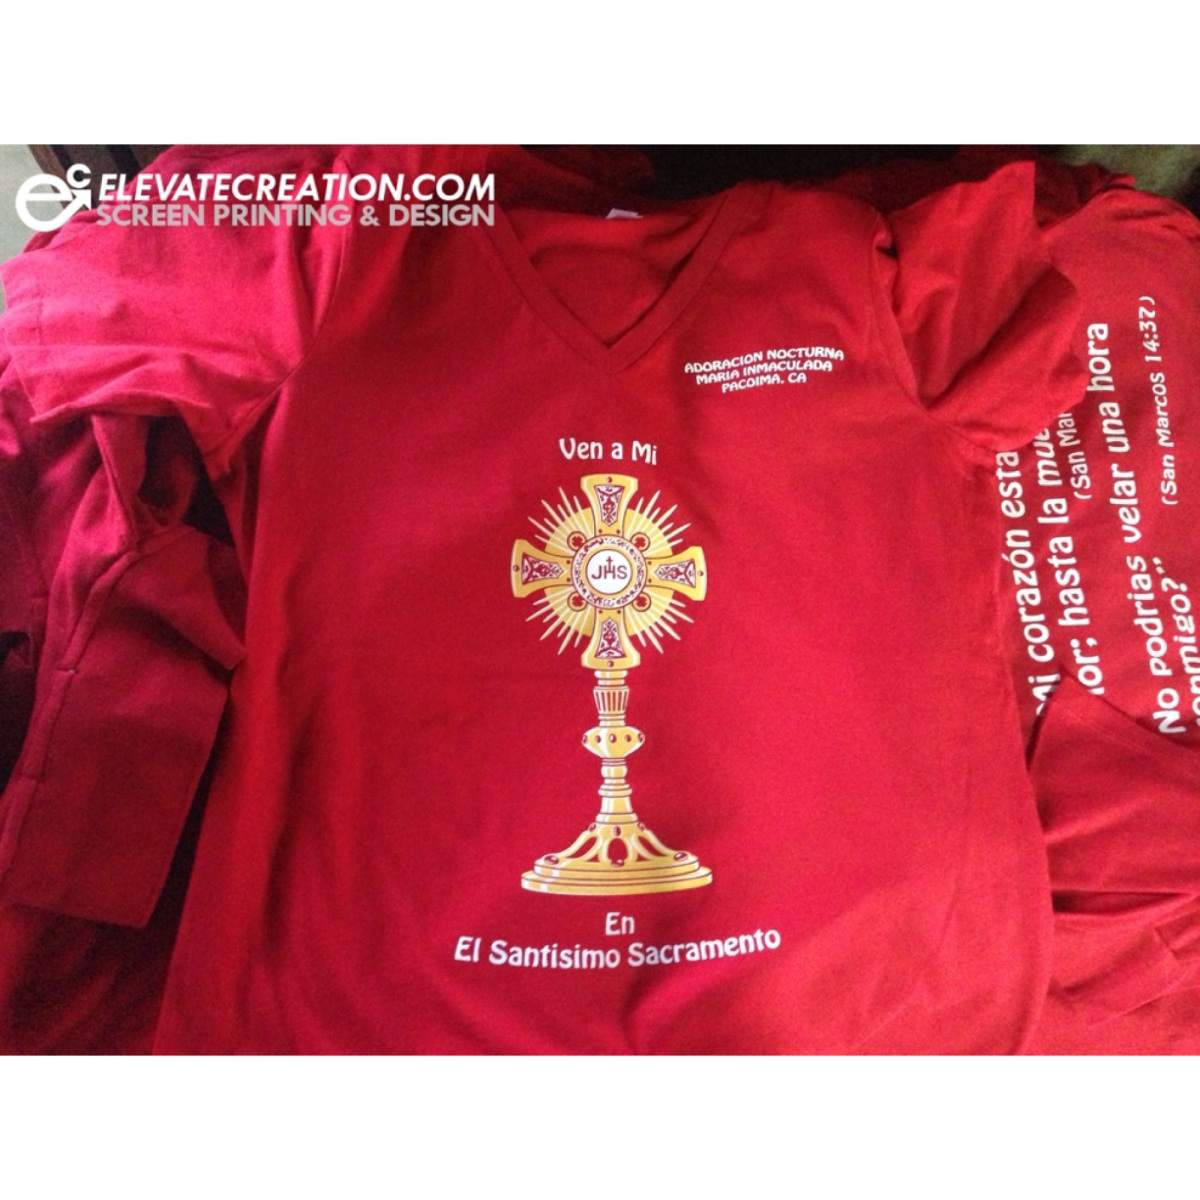 red-bella-v-neck-t-shirt-church-pacoima-screen-printing